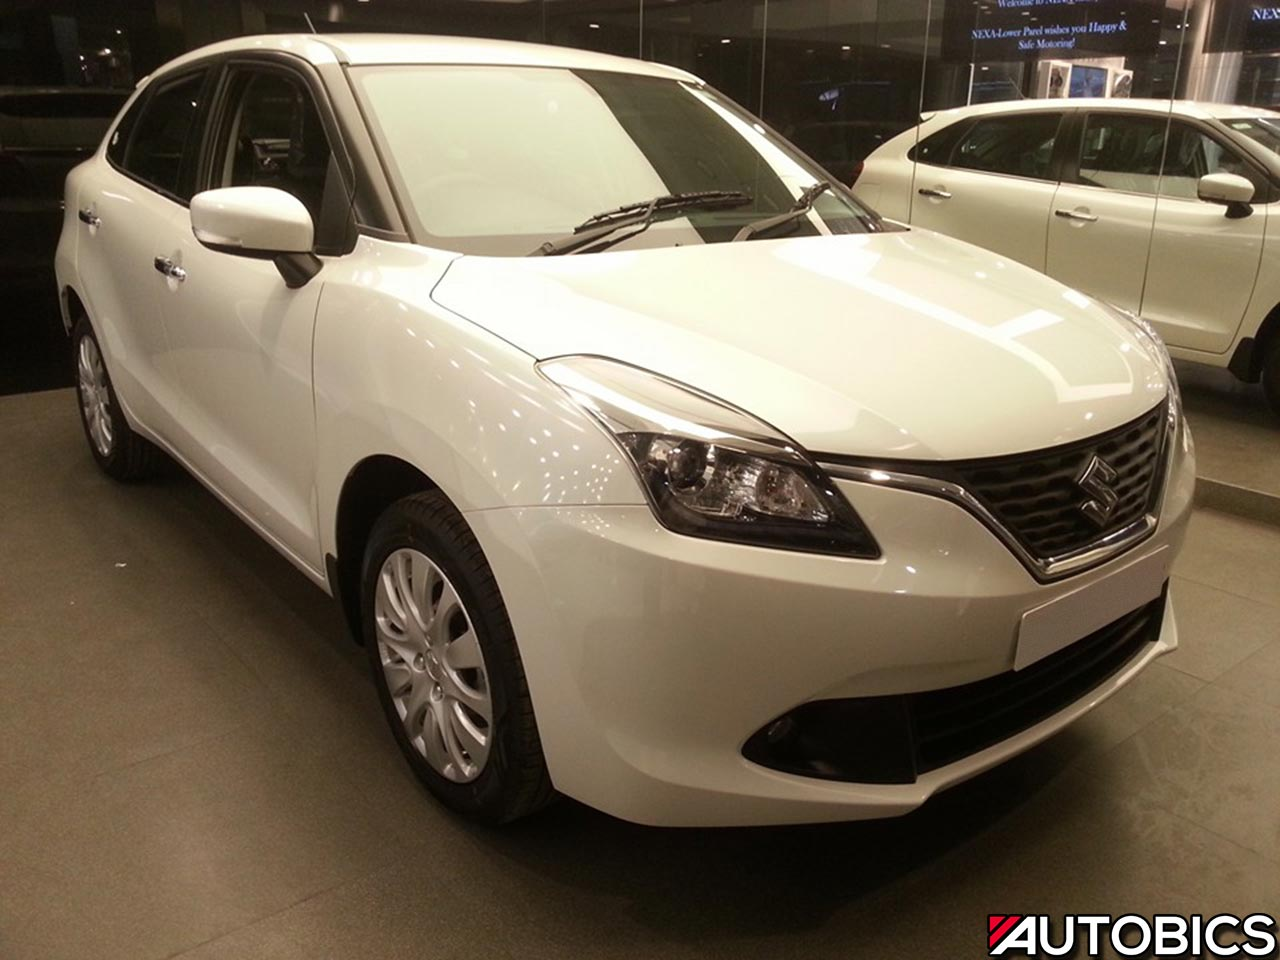 Maruti Suzuki Baleno at NEXA showroom